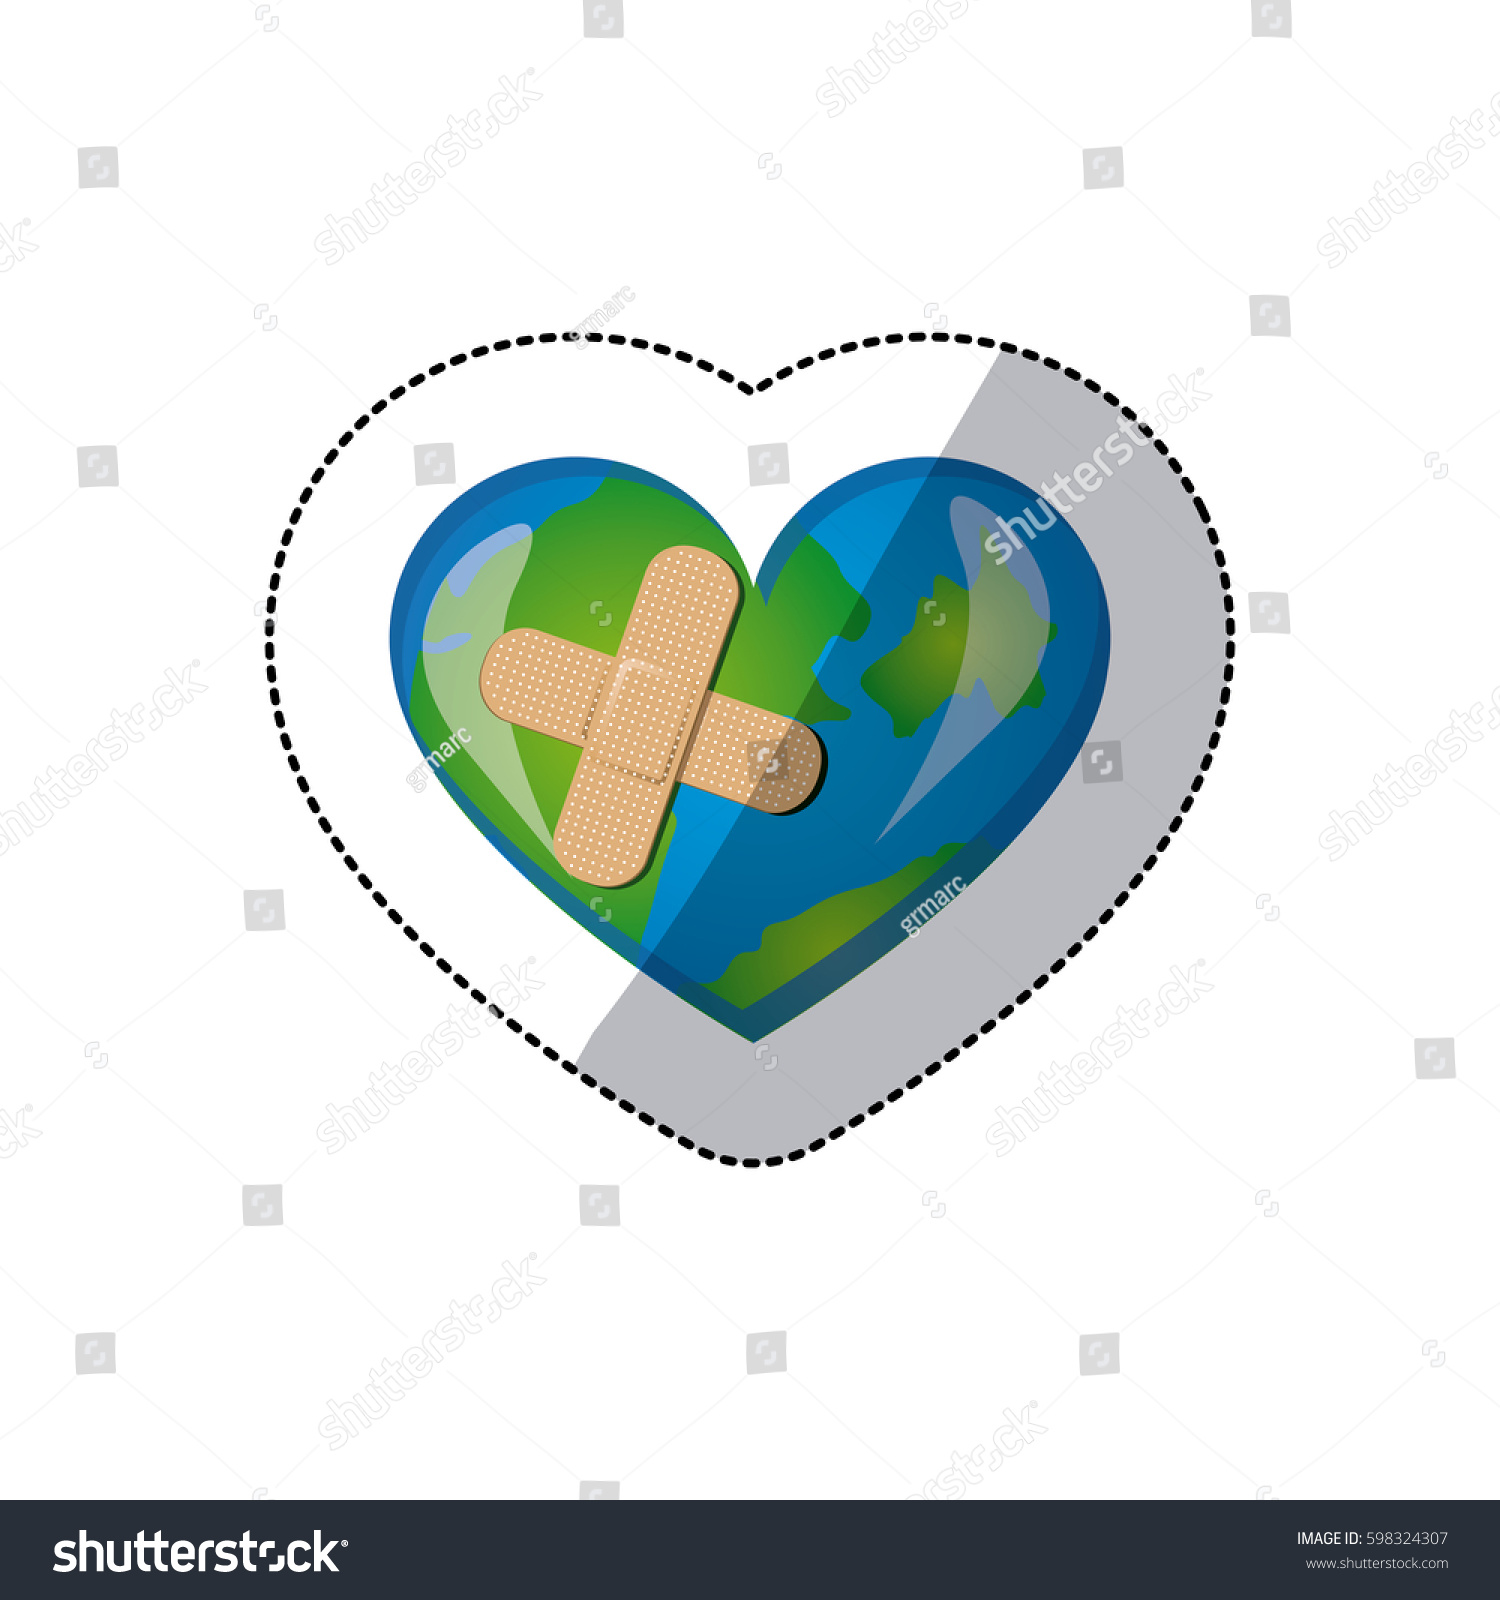 Color earth planet heart band aid stock vector 598324307 shutterstock buycottarizona Choice Image